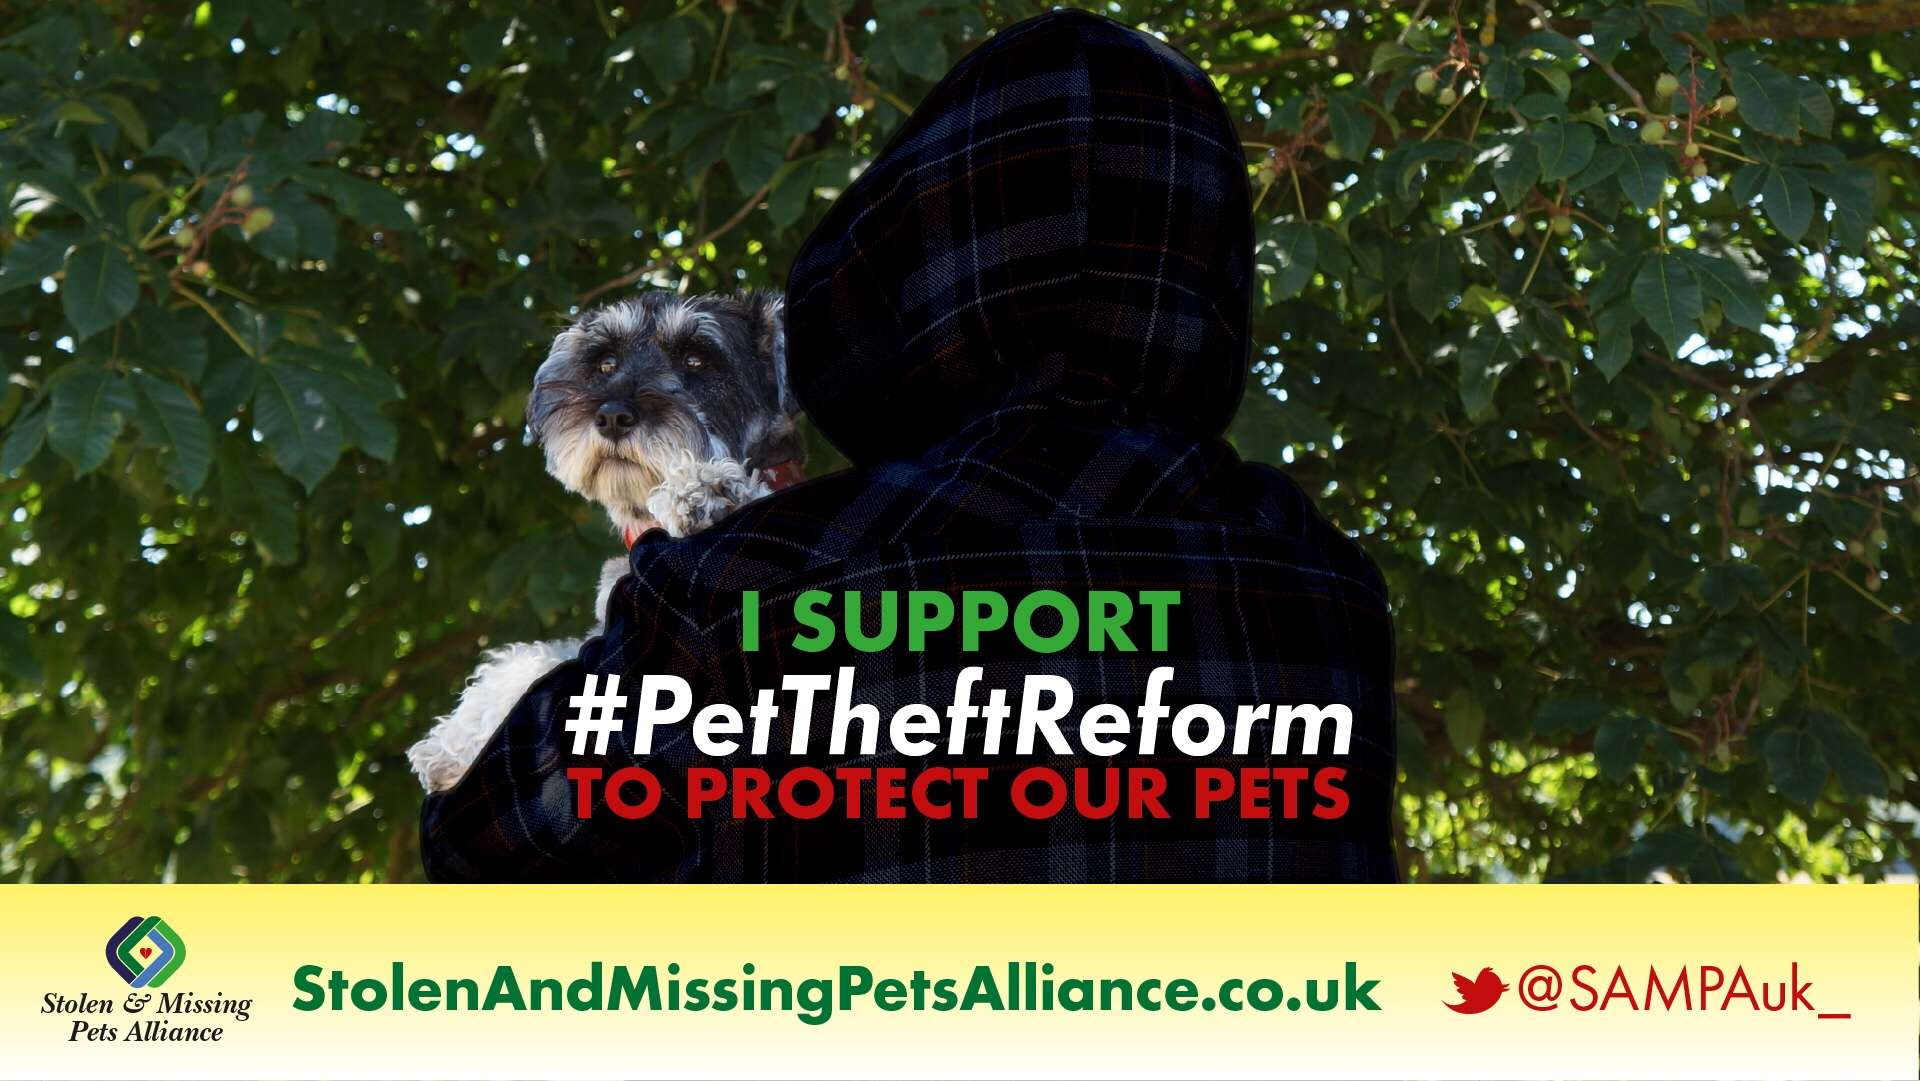 What is #PetTheftReform ?